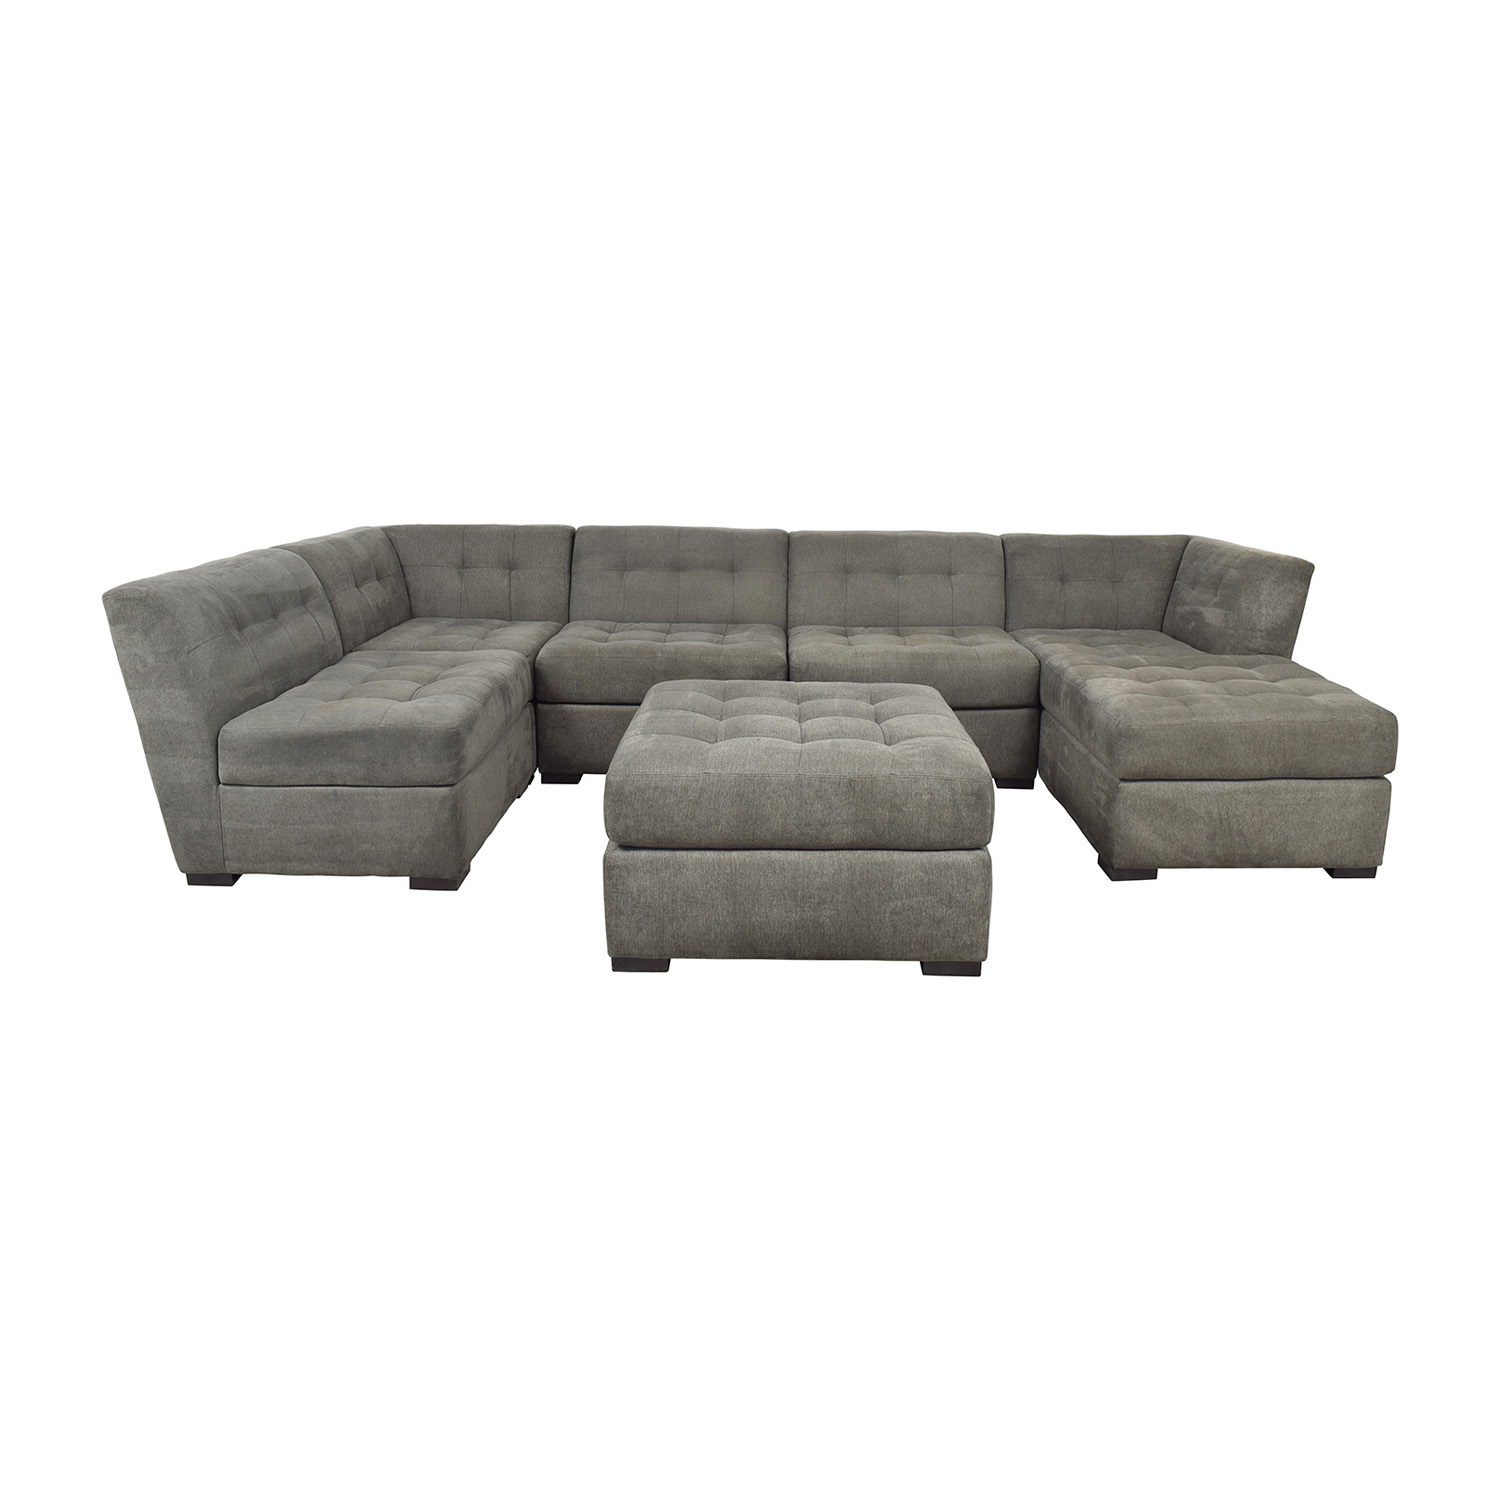 Chaise Spoon 82 Off Macy S Macy S Roxanne Ii Modular Sectional Sofa With Chaise Ottoman Sofas